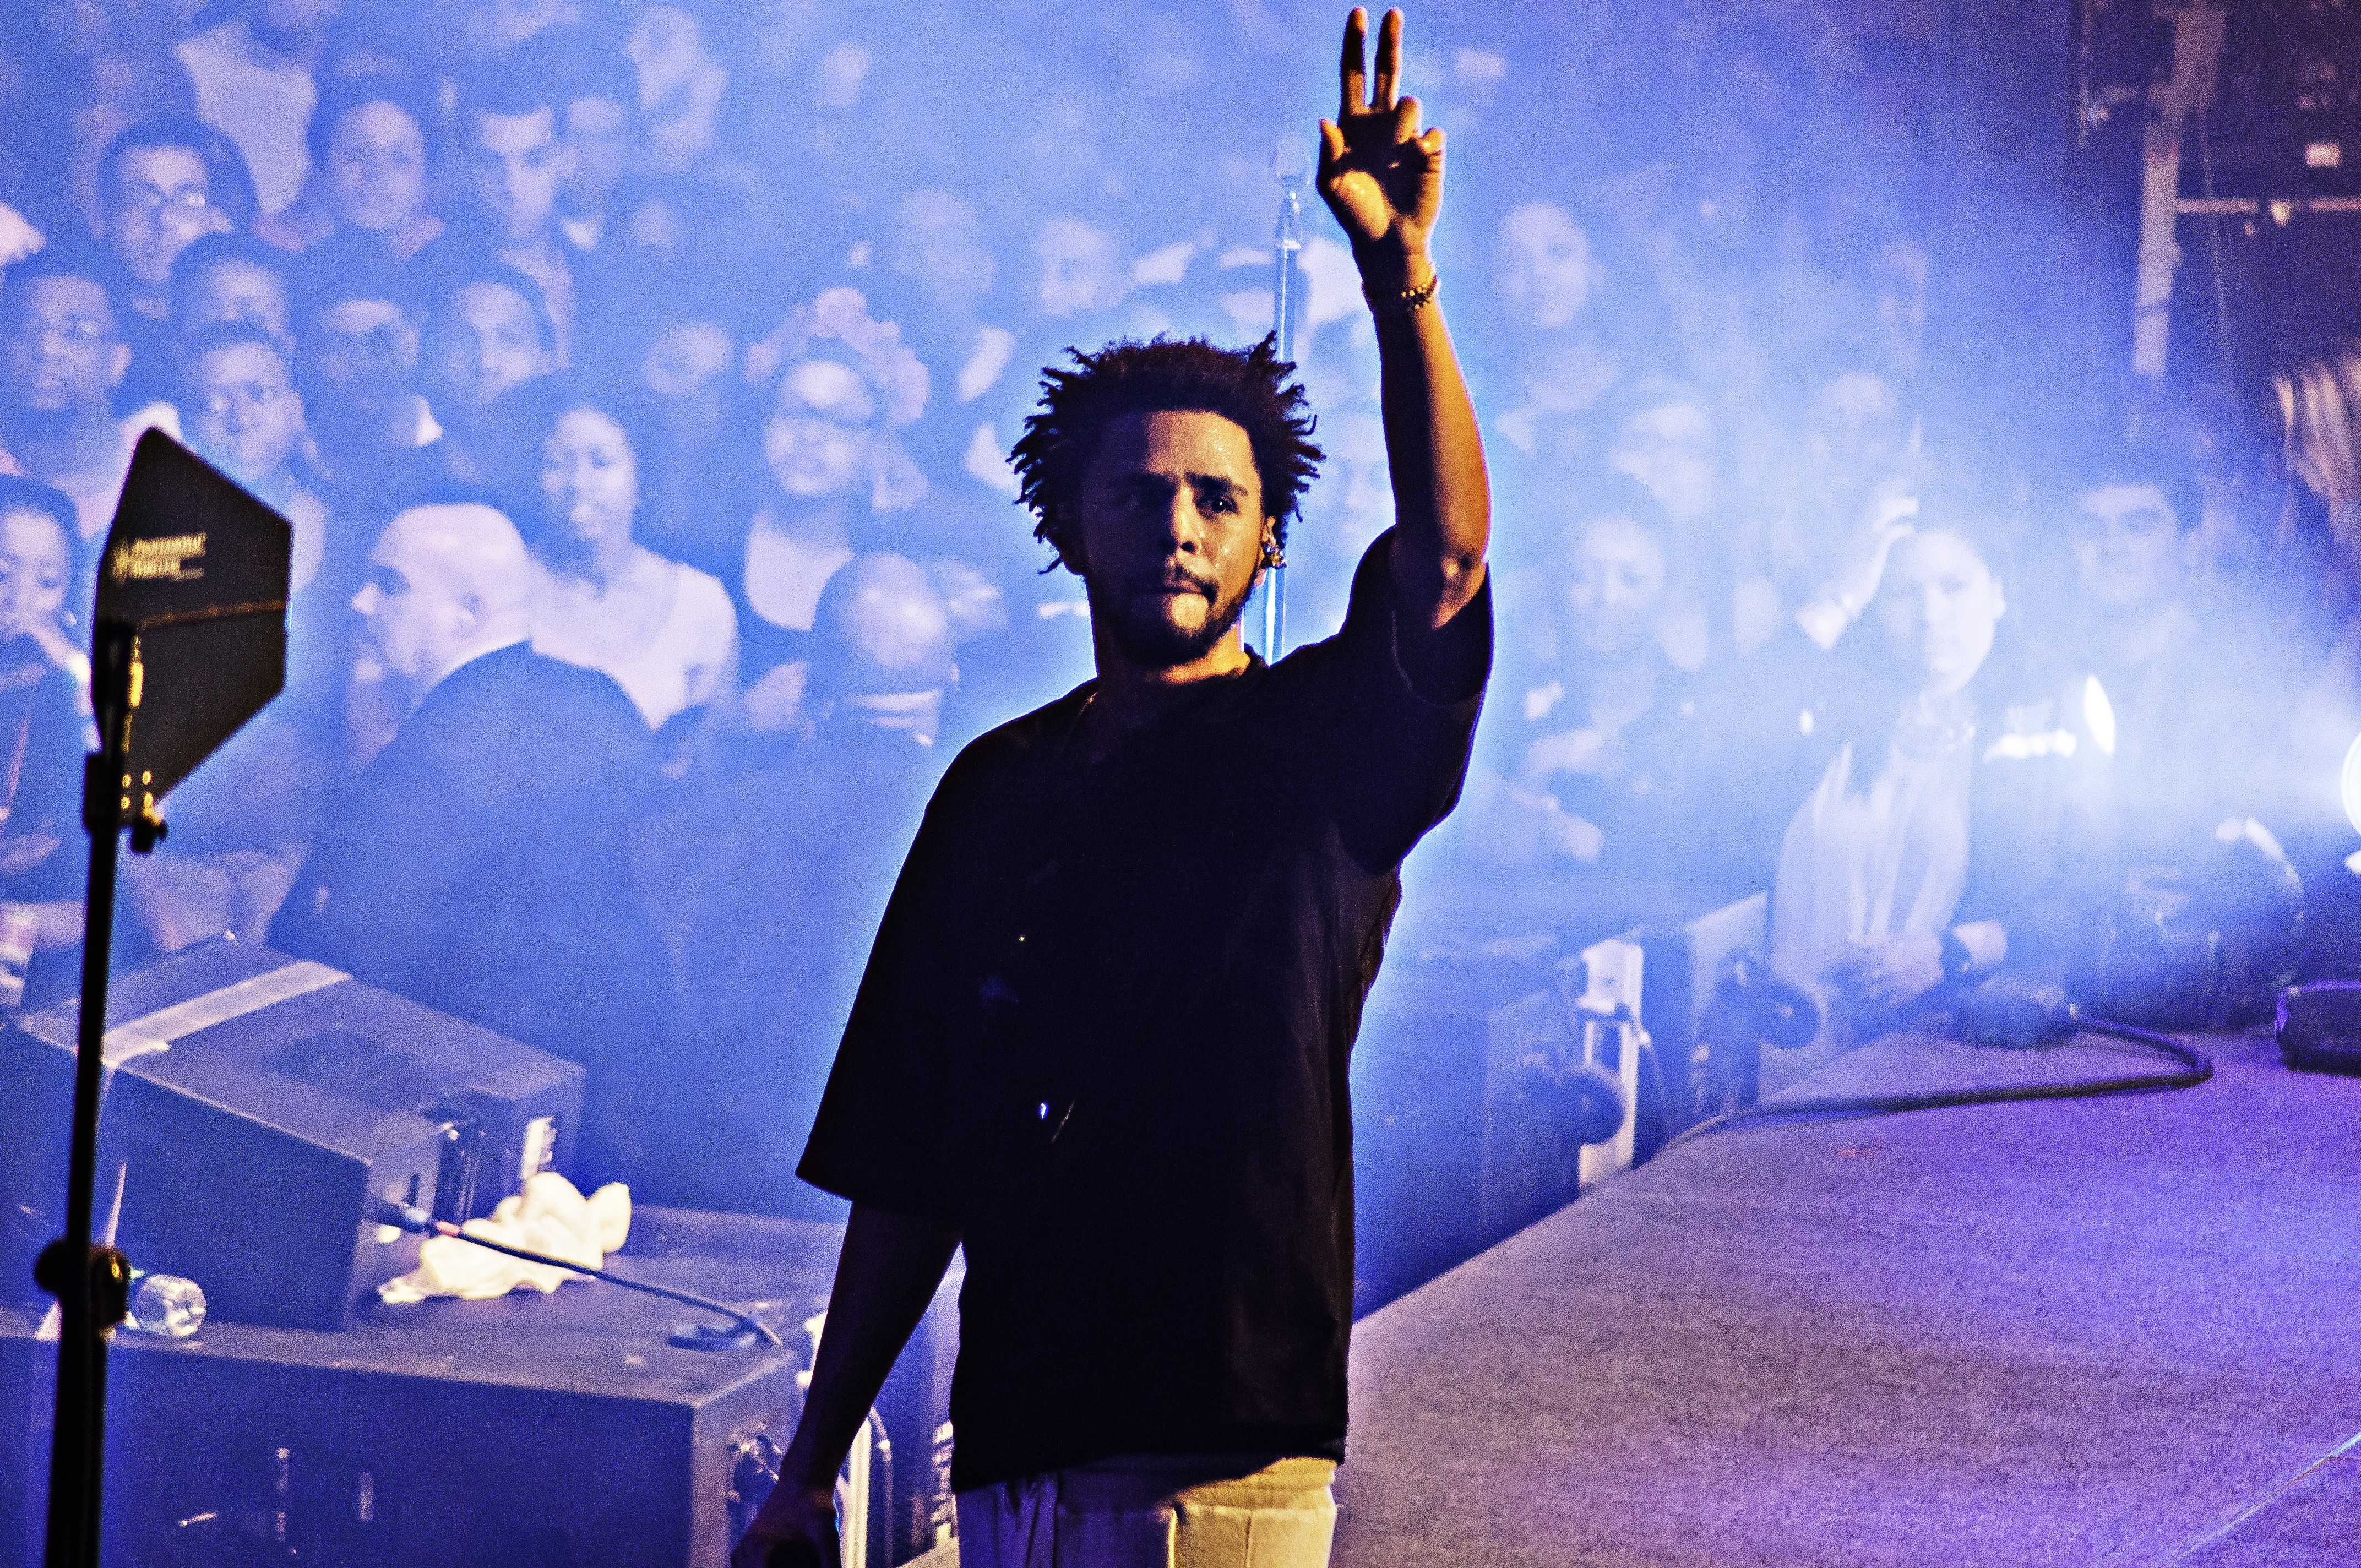 J cole announces dollar and a dream tour iii friday night lights five years since the release of his mixtape friday night lights j cole is playing the album in its entirety at secret venues announced the day of with aloadofball Choice Image